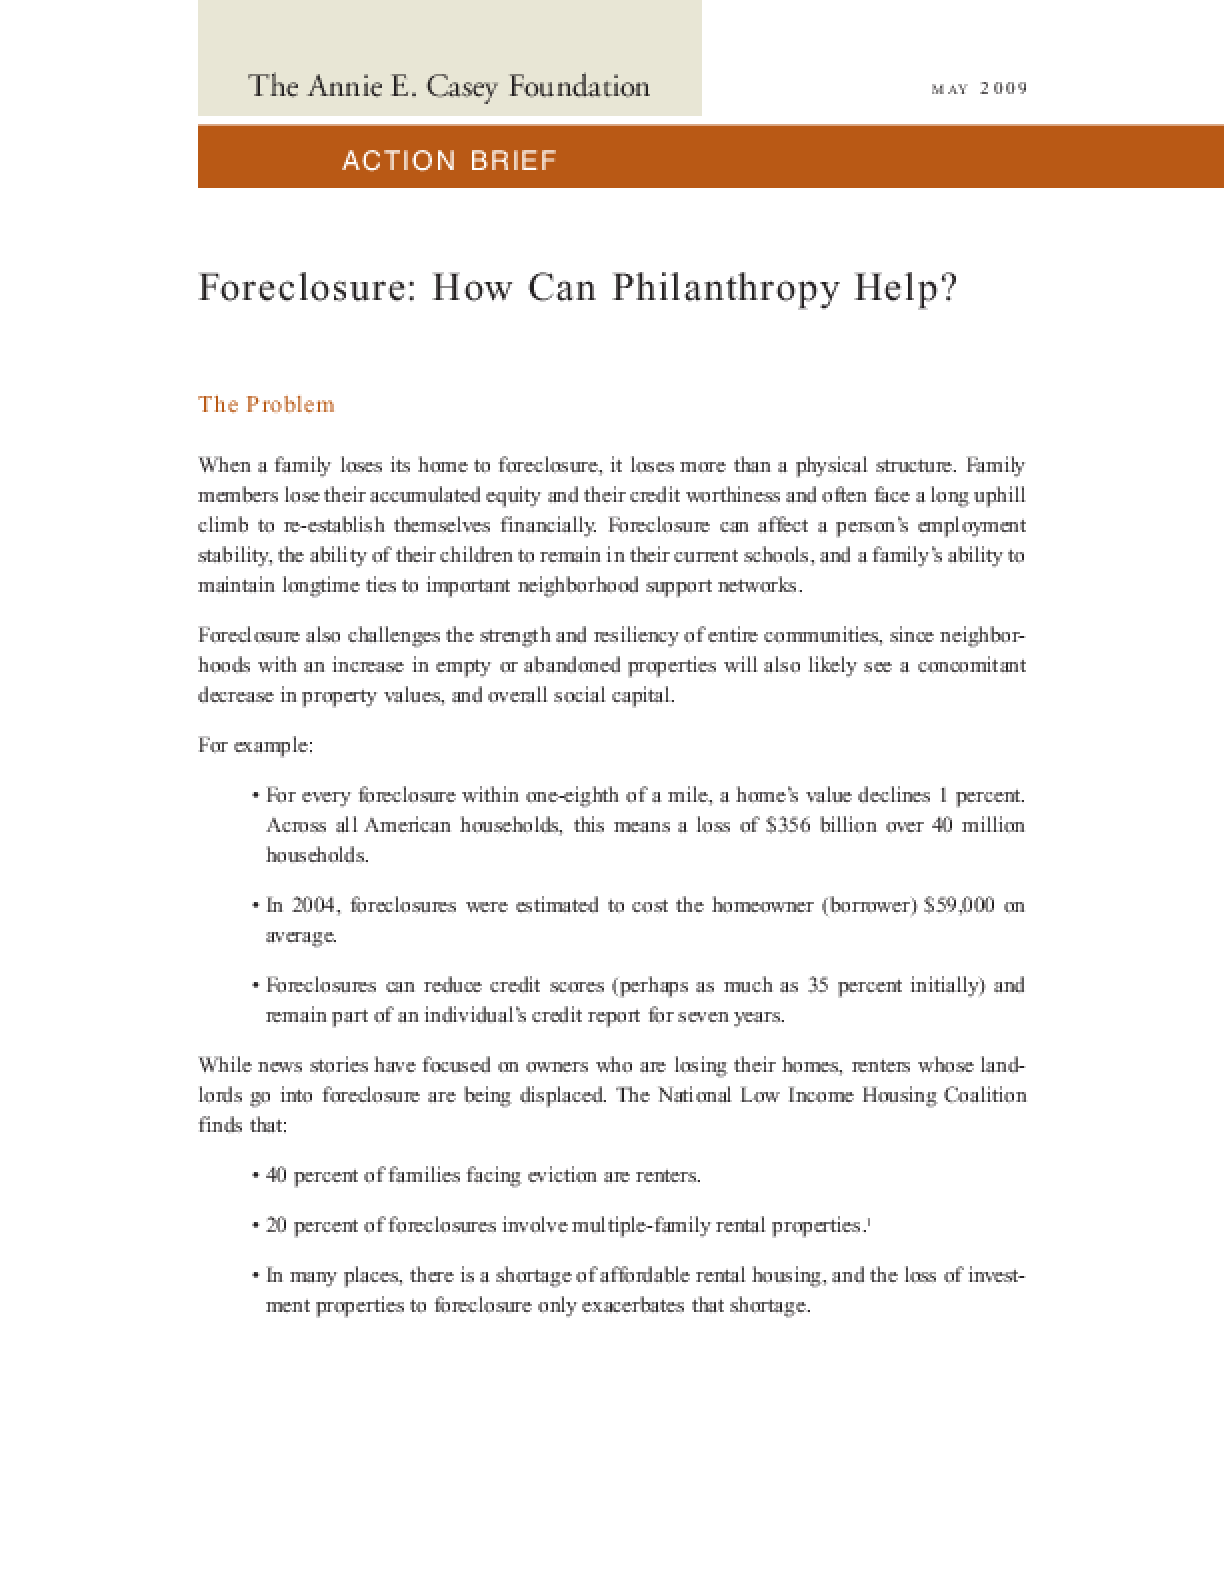 Foreclosure: How Can Philanthropy Help?